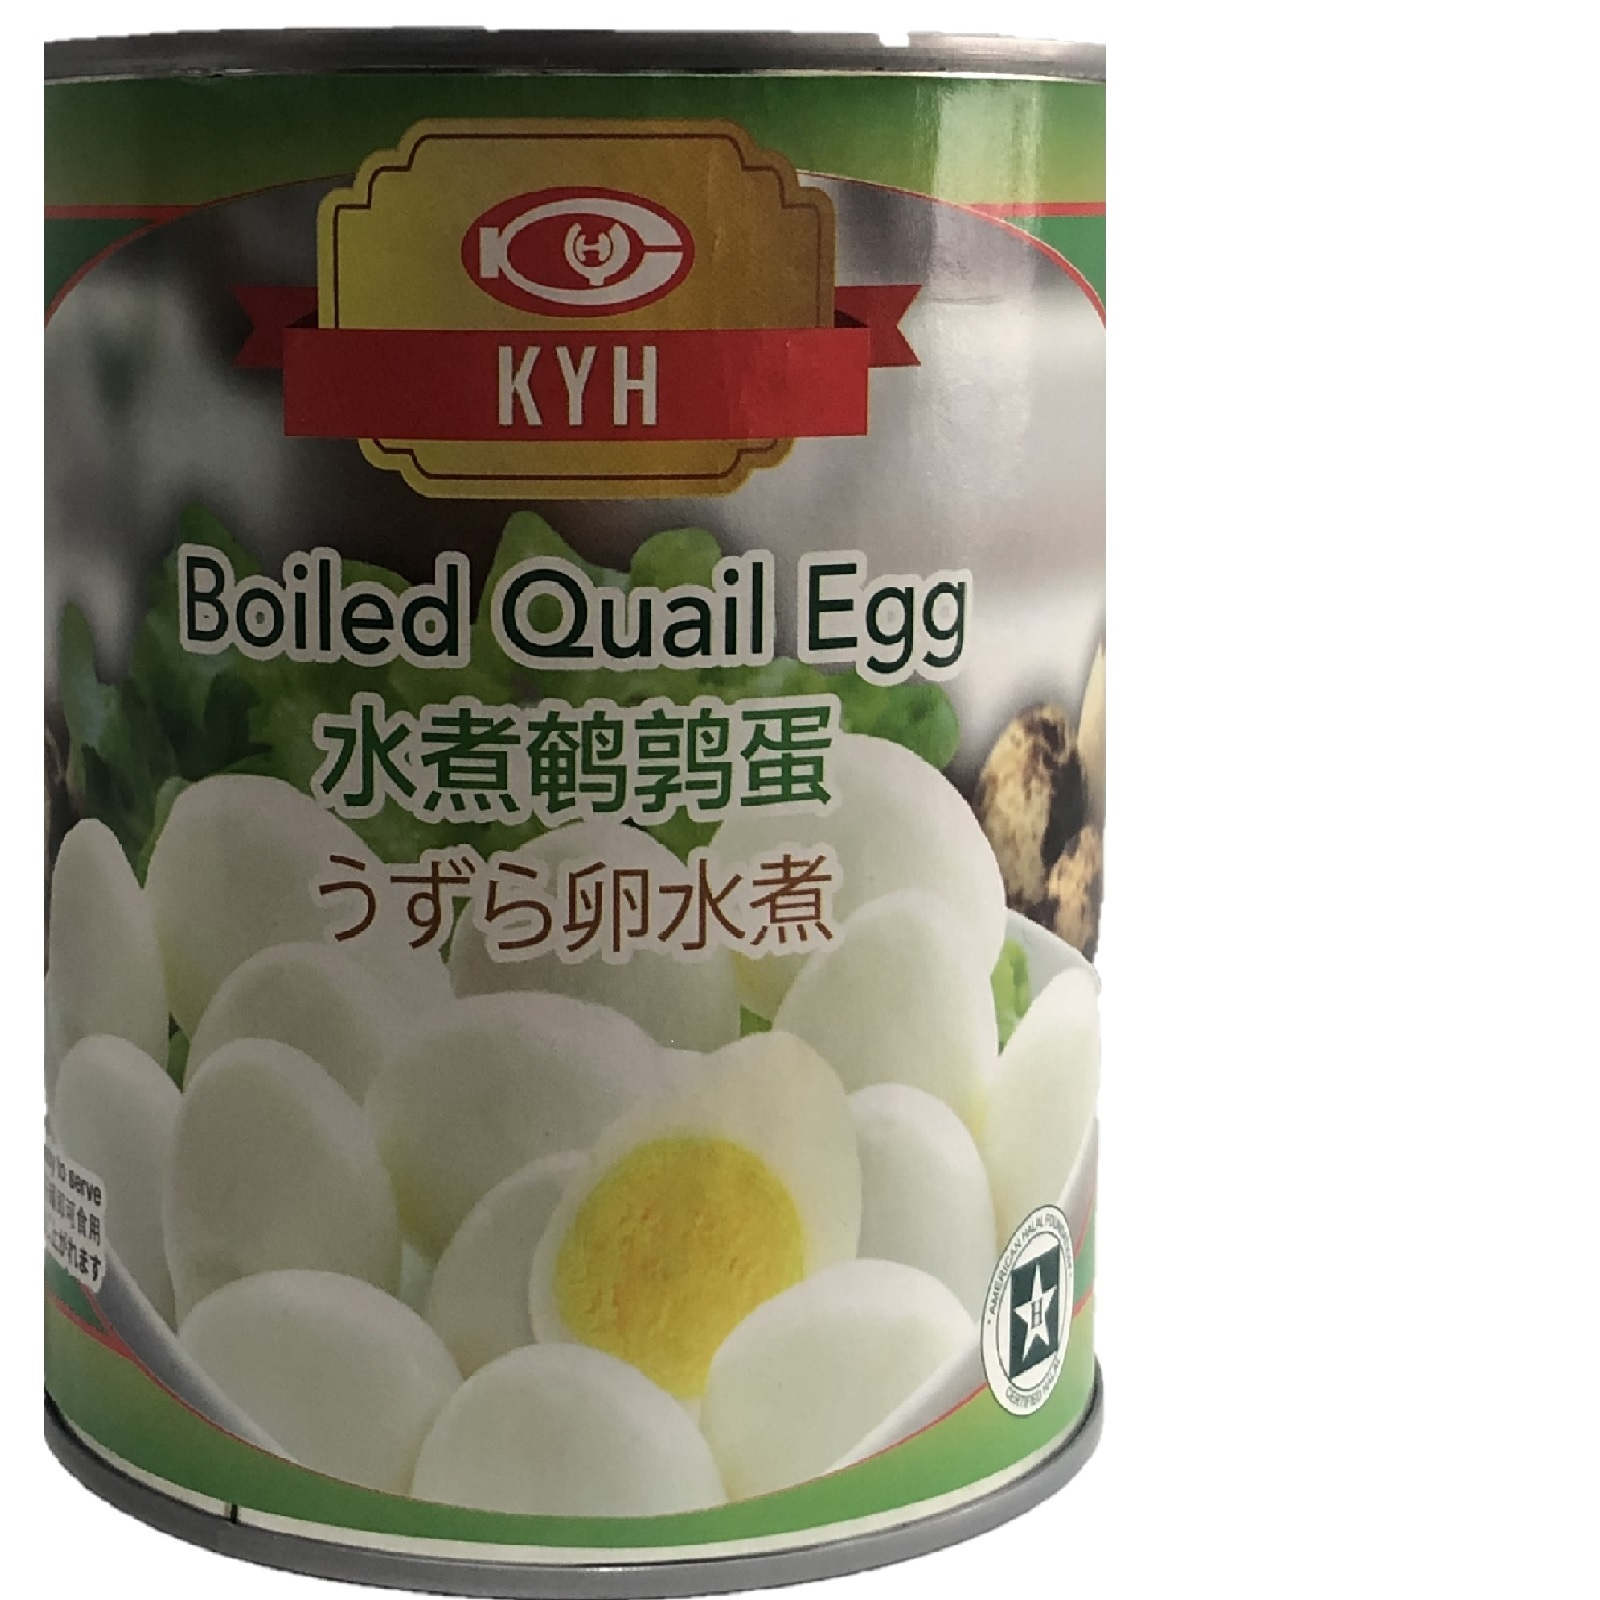 kyh canned cooked and peeled quail egg 5